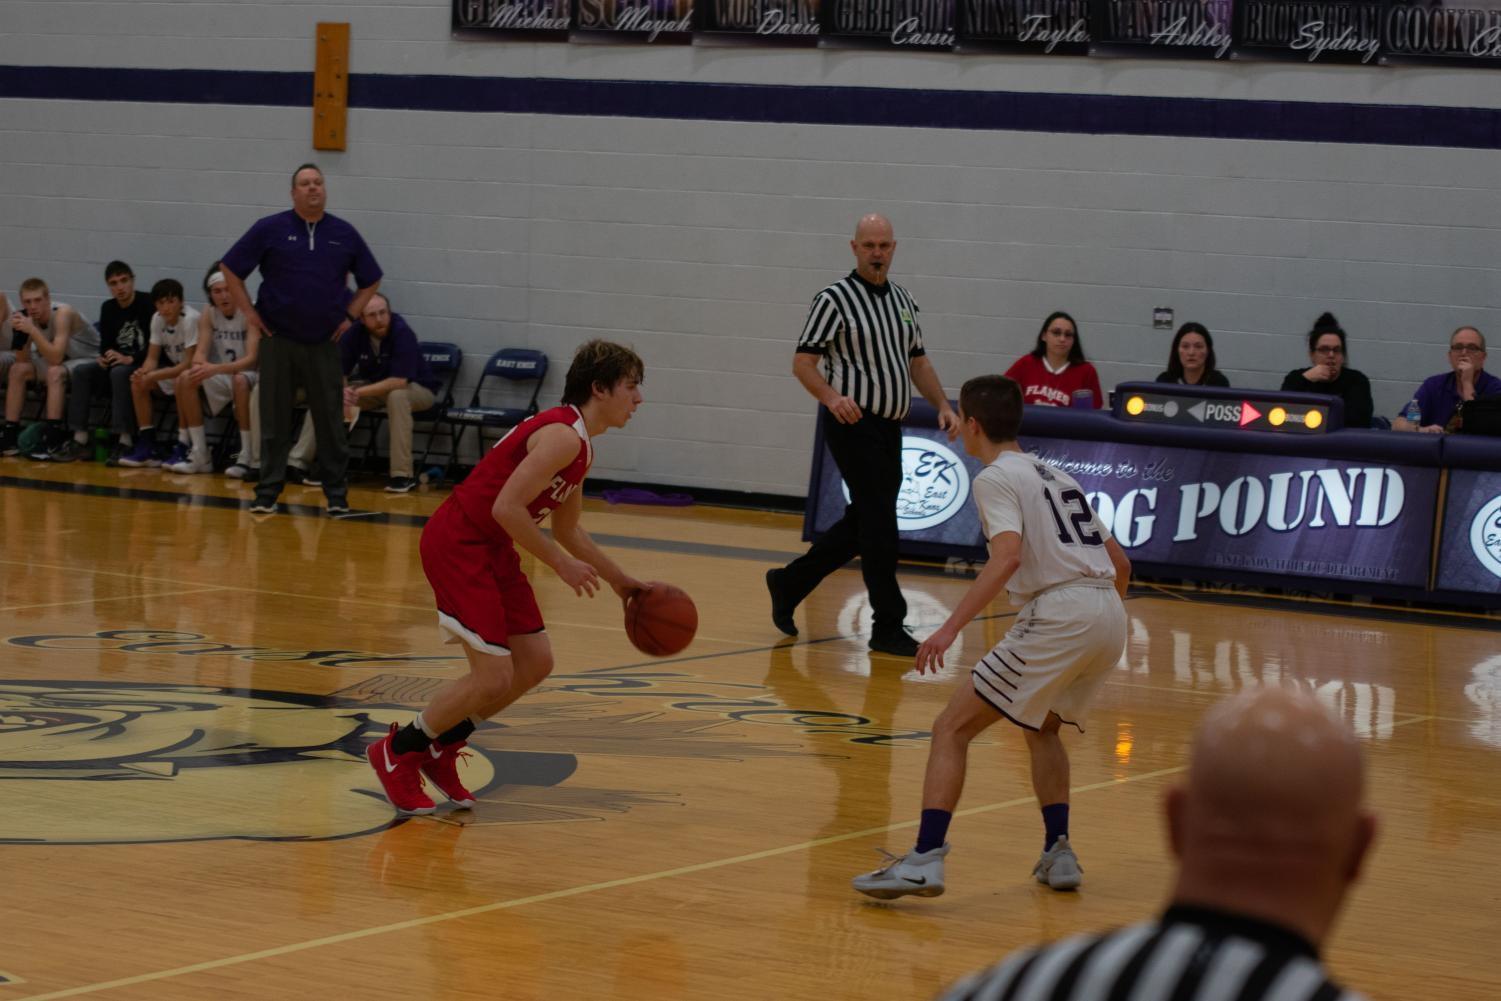 Jared Mount brings the ball down the court in the Bulldogs' gym.